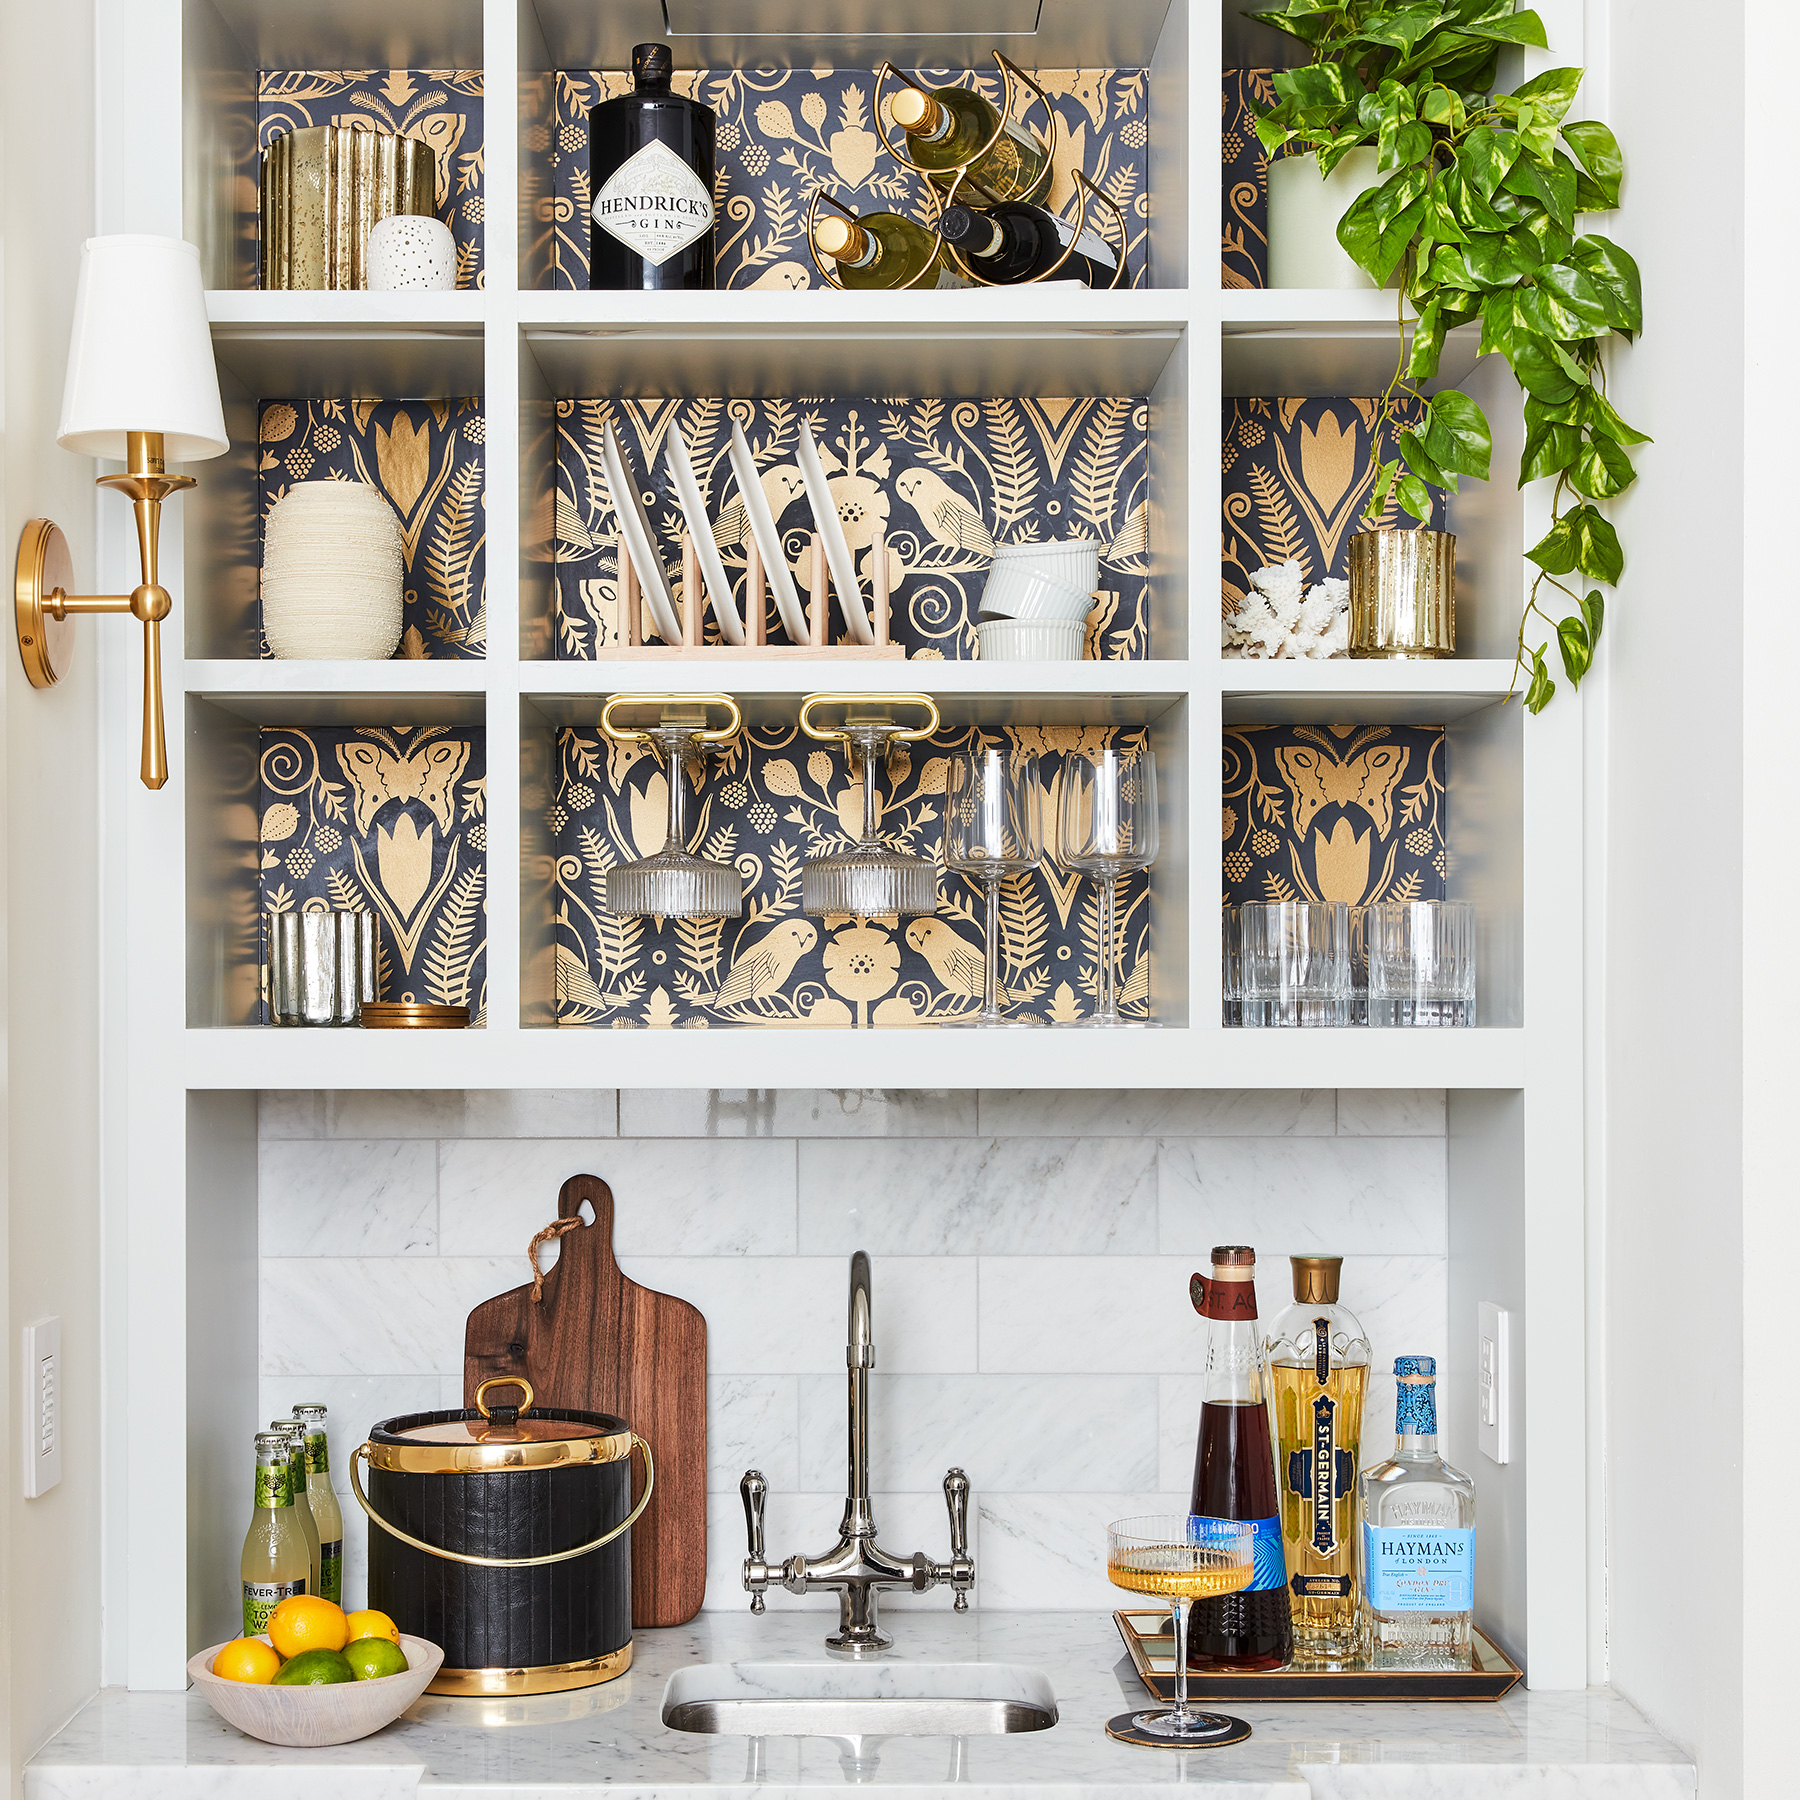 2020 Real Simple Home Tour: Wet Bar